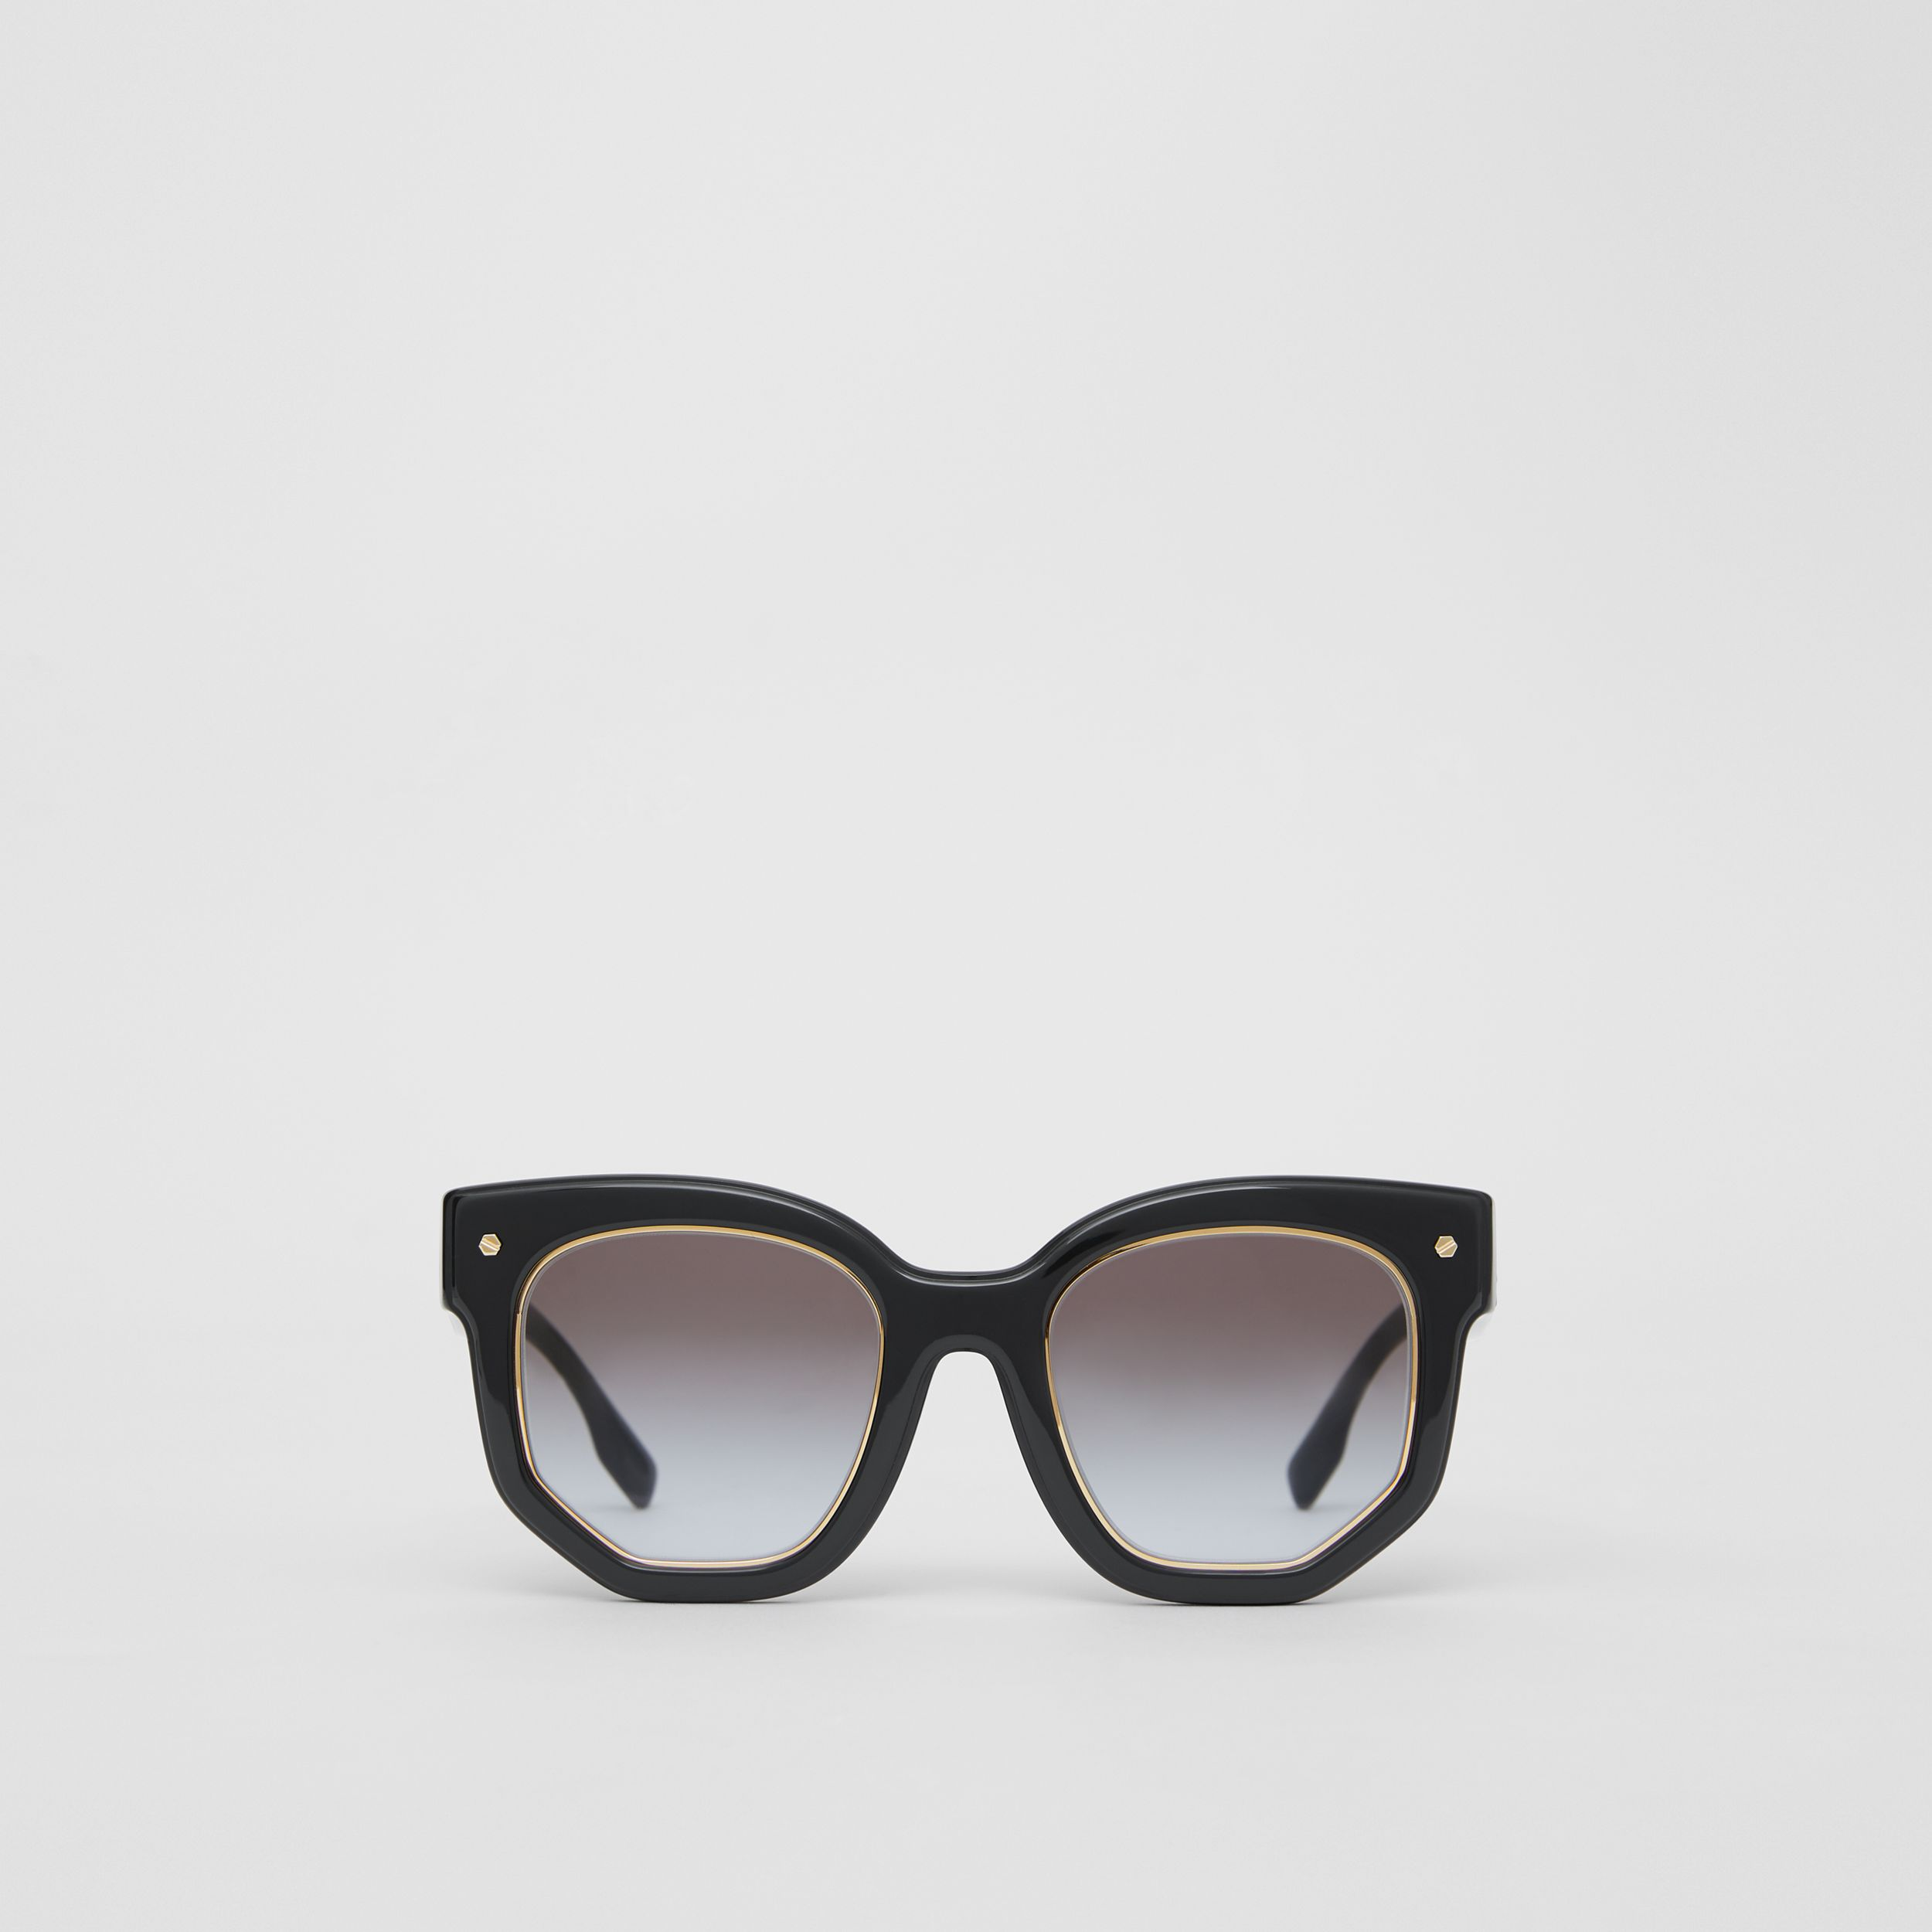 Geometric Frame Sunglasses in Black - Women | Burberry Canada - 1